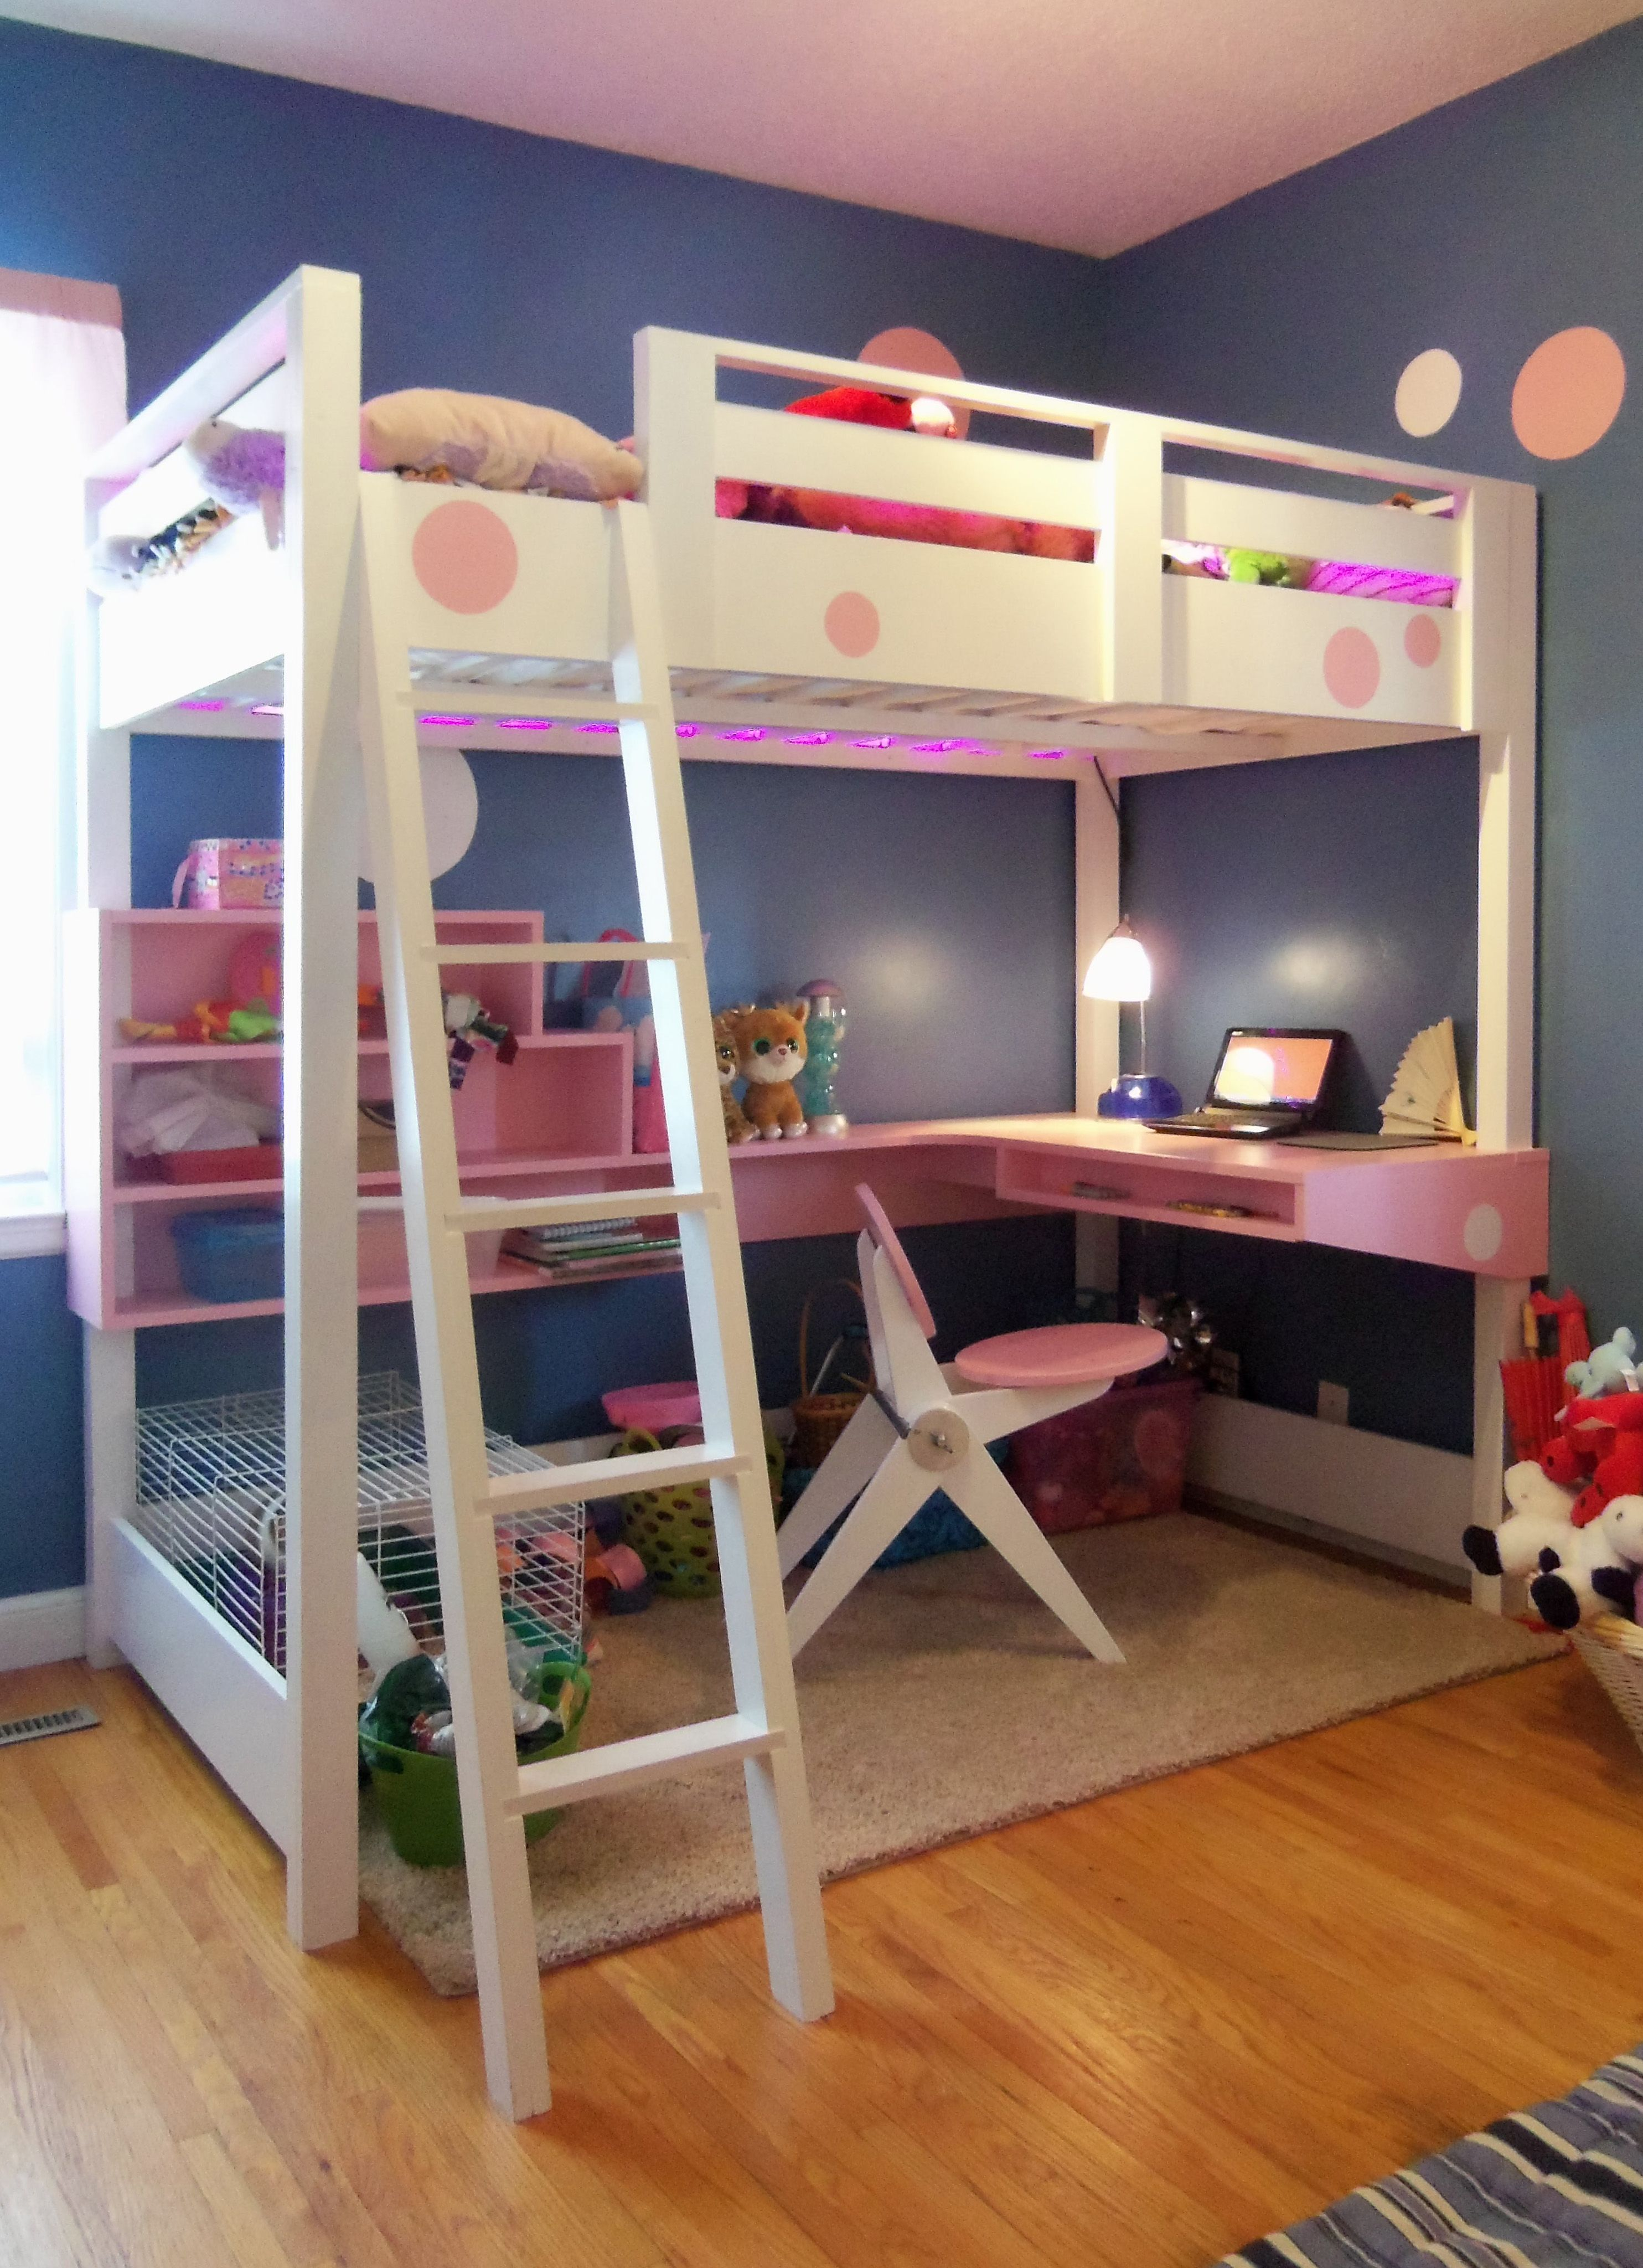 Bedroom ideas with loft bed  loftbed storage ideas  Loft bed with desk  Do It Yourself Home